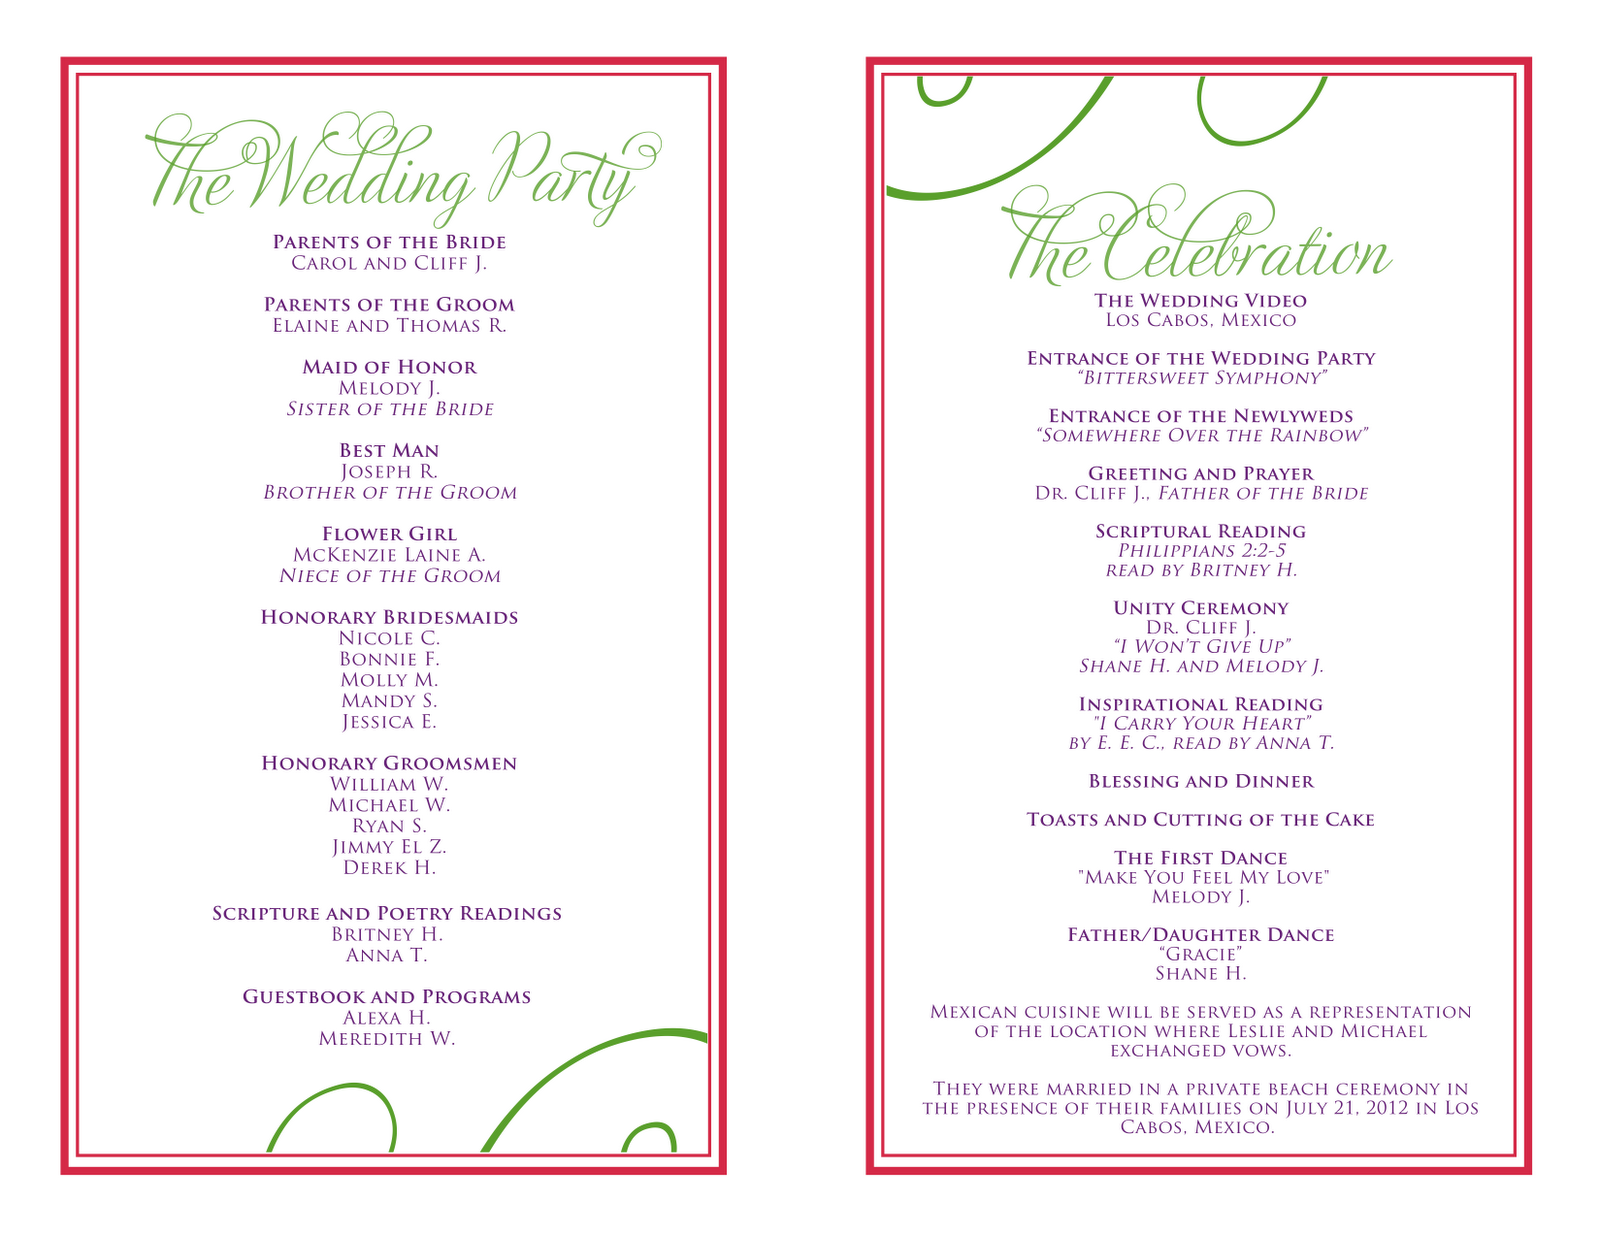 Wedding itinerary templates free wedding reception programs wedding itinerary templates free wedding reception programs templates pronofoot35fo Image collections